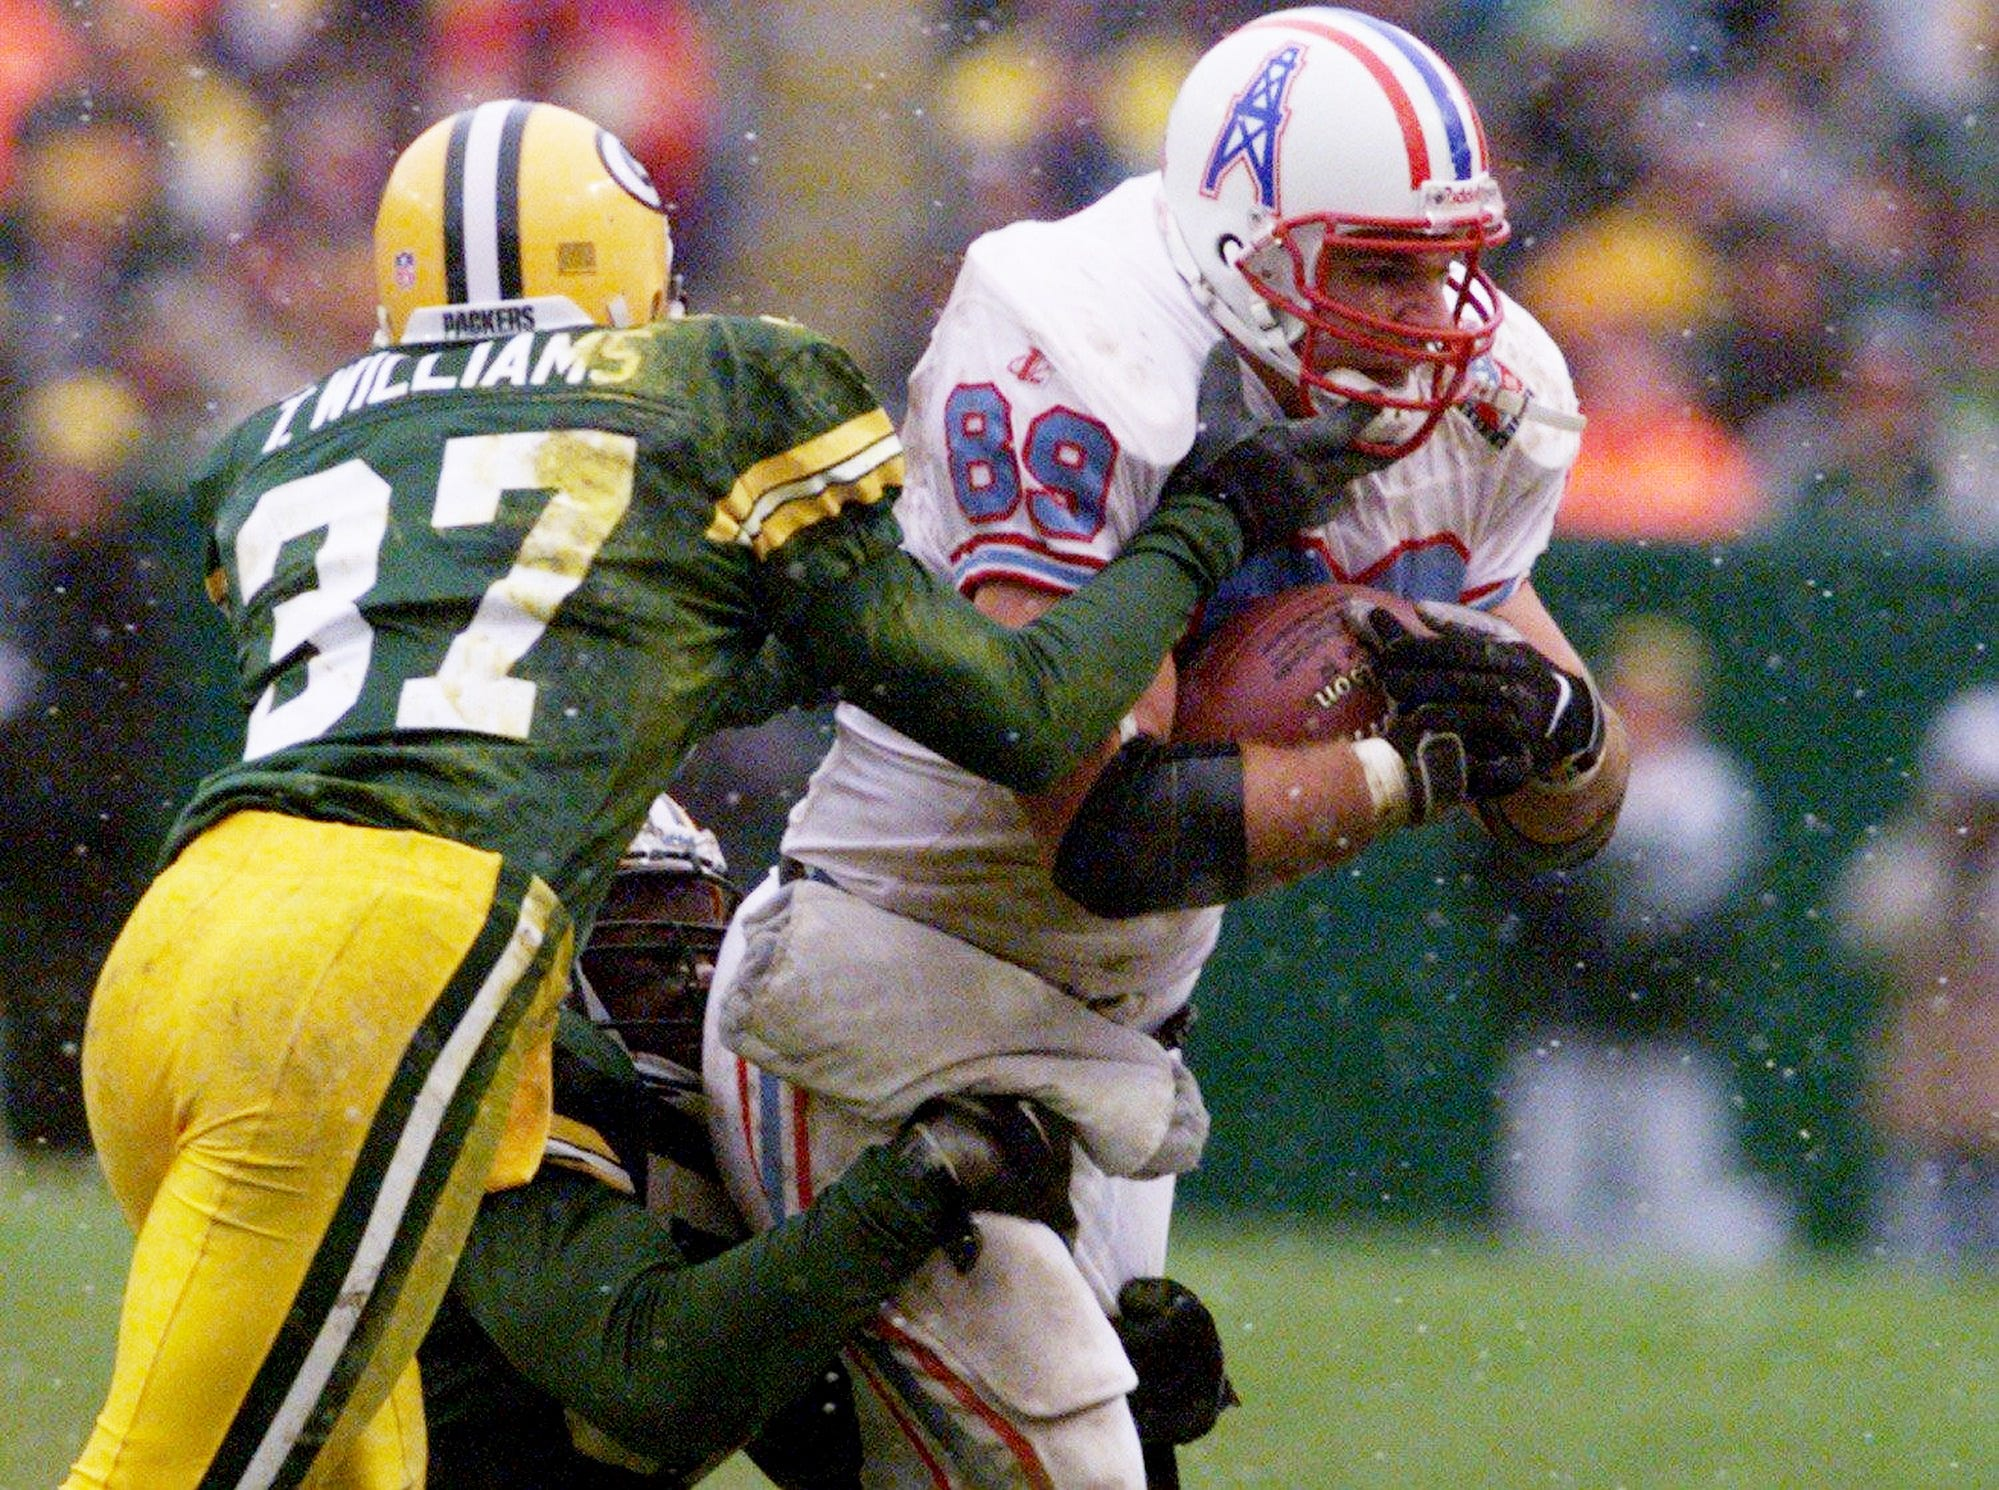 Frank Wycheck (89) of the Tennessee Oilers reaches for extra yards as Tyrone Williams (37) and Brian Williams of the Green Bay Packers push him out of bounds during the 4th quarter. The Oilers lost 30-22 to the Packers on the road Dec. 20, 1998.